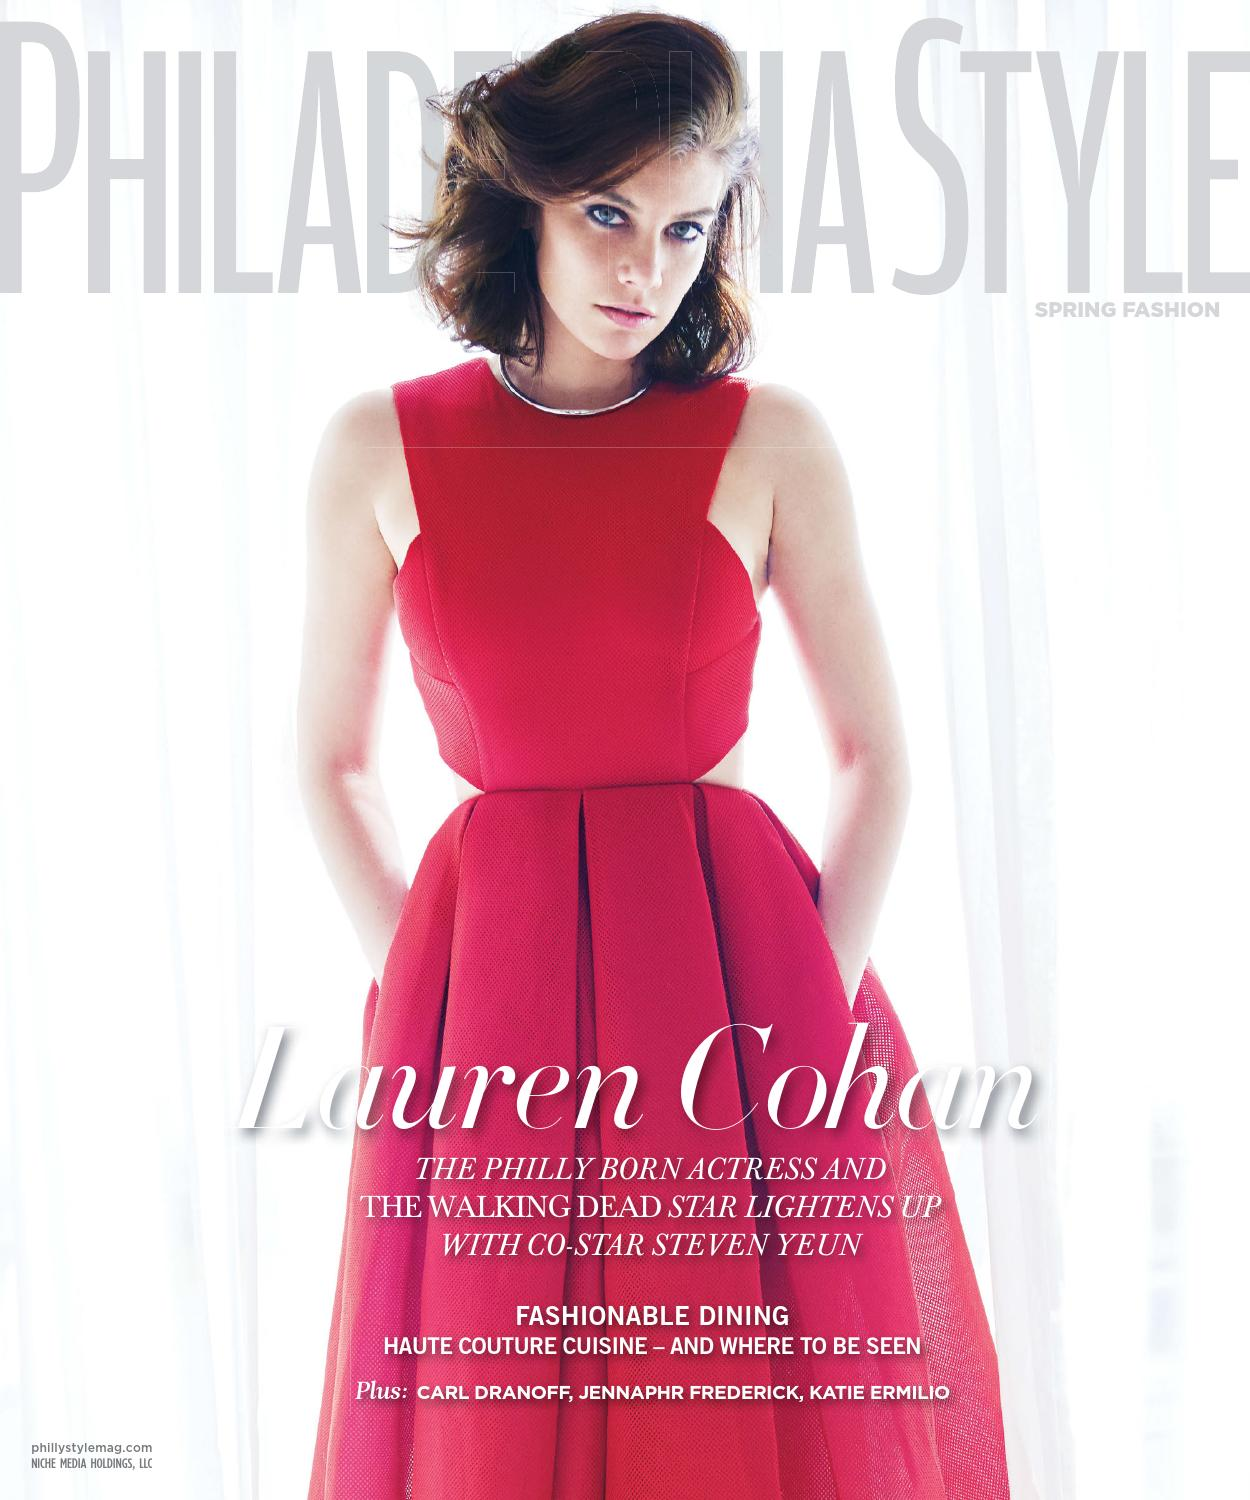 73fd839a7fa Philadelphia Style - 2015 - Issue 1 - Spring - Lauren Cohan by MODERN  LUXURY - issuu